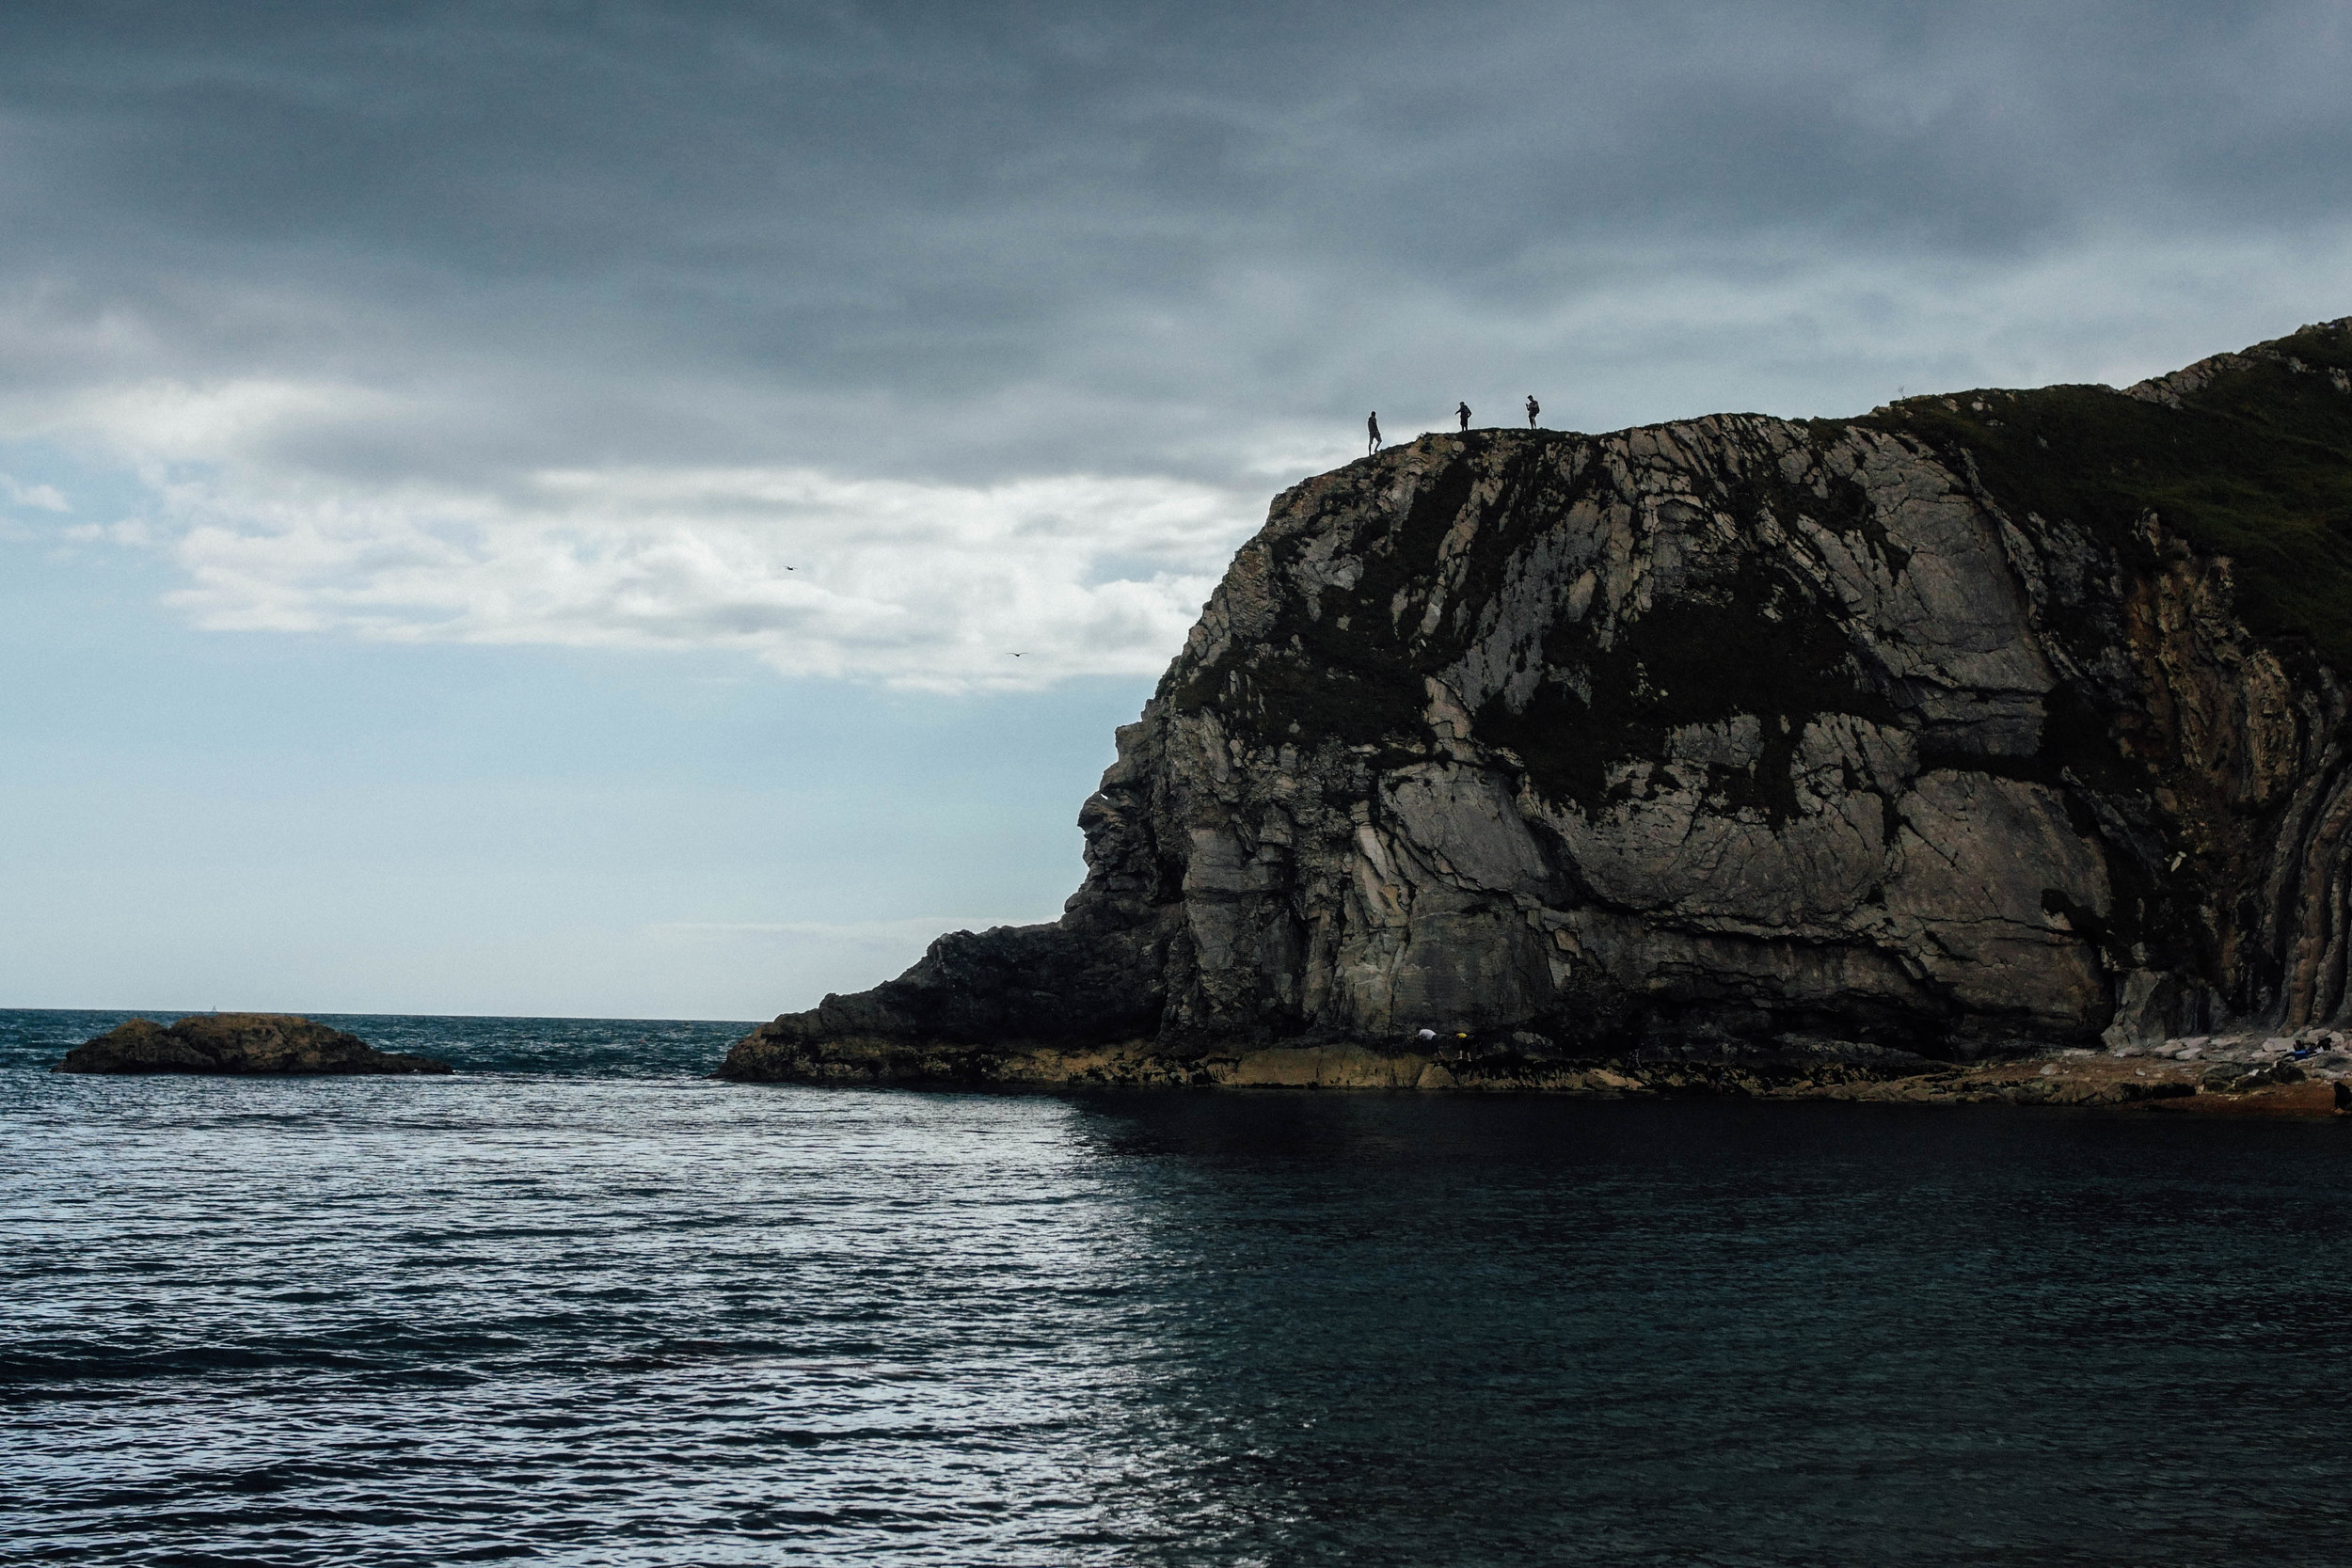 The other side of Lulworth Cove, in the Jurassic Coast in Dorset. Promotional shot for a local hiking shop.